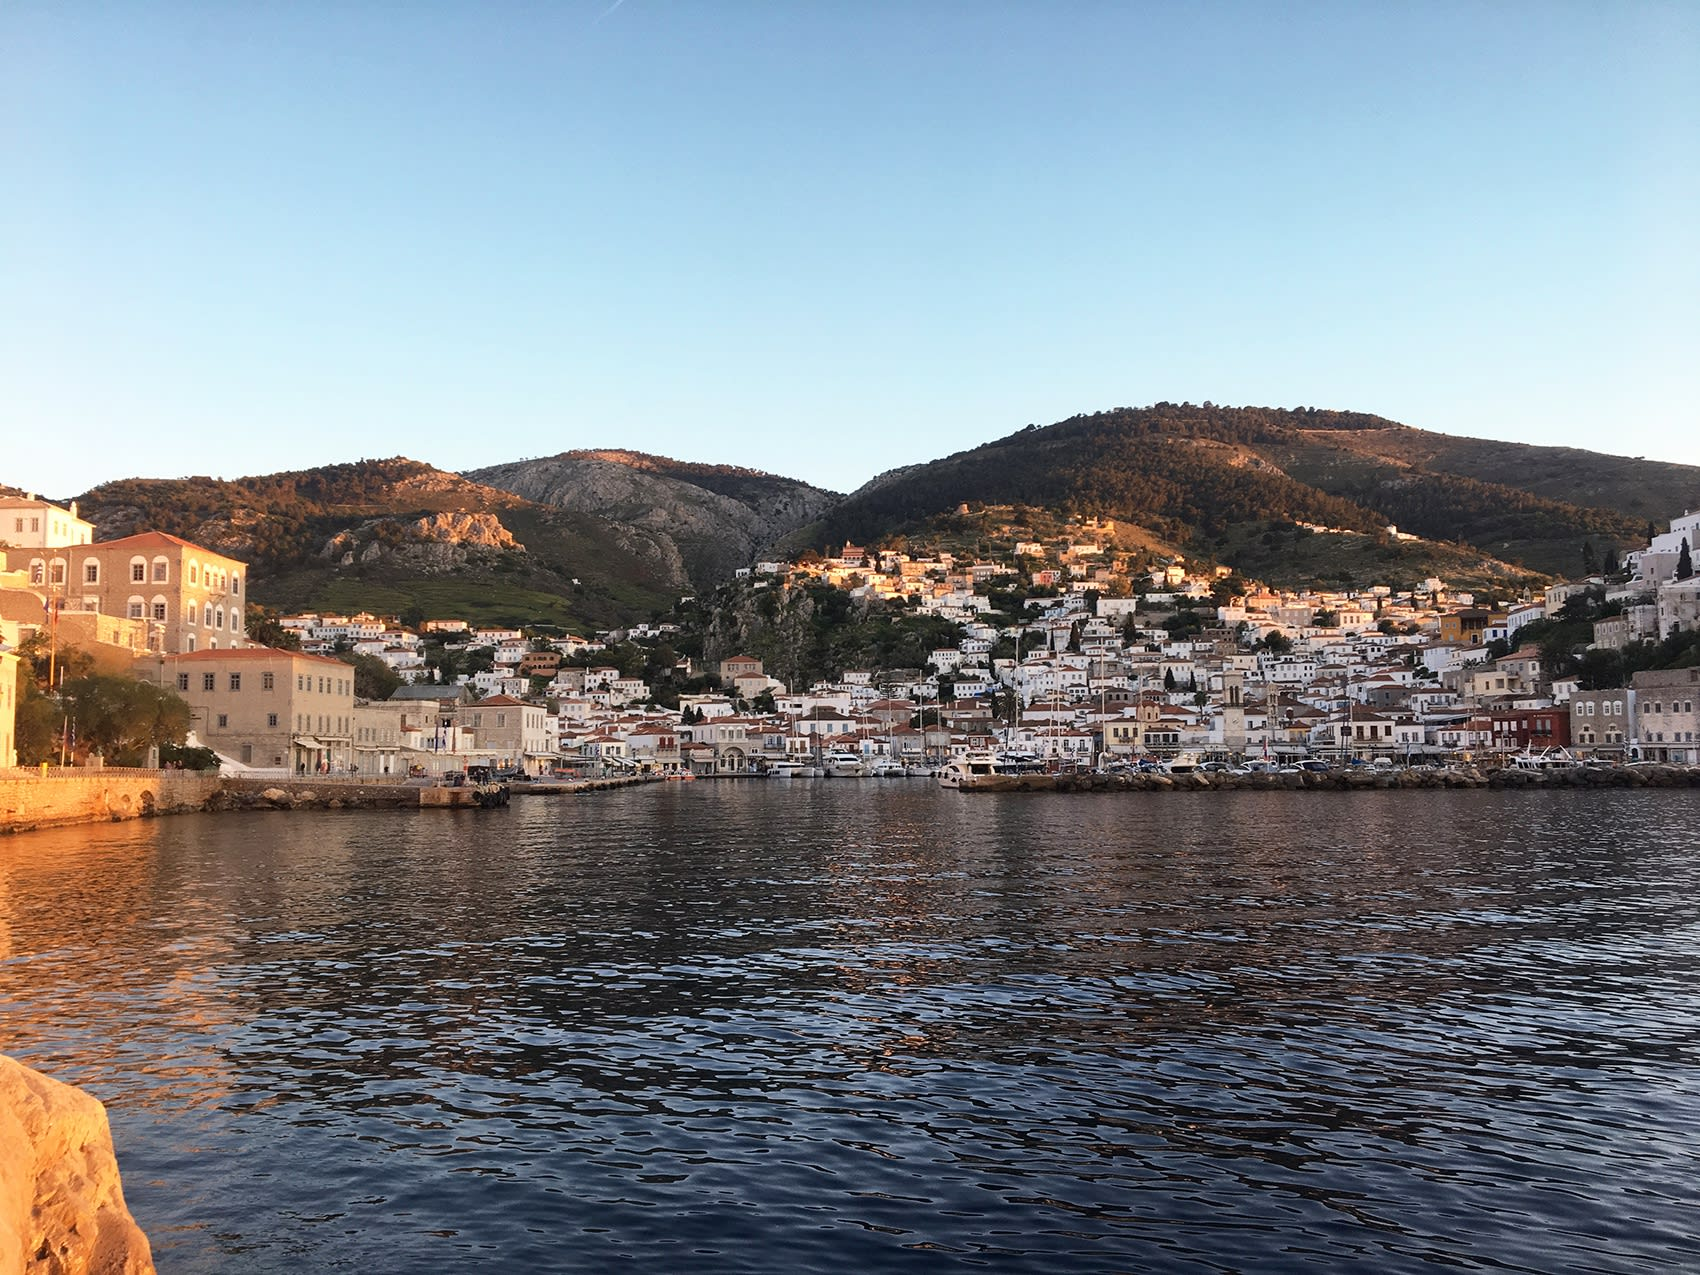 port of hydra island, easter, beautifull with ships,